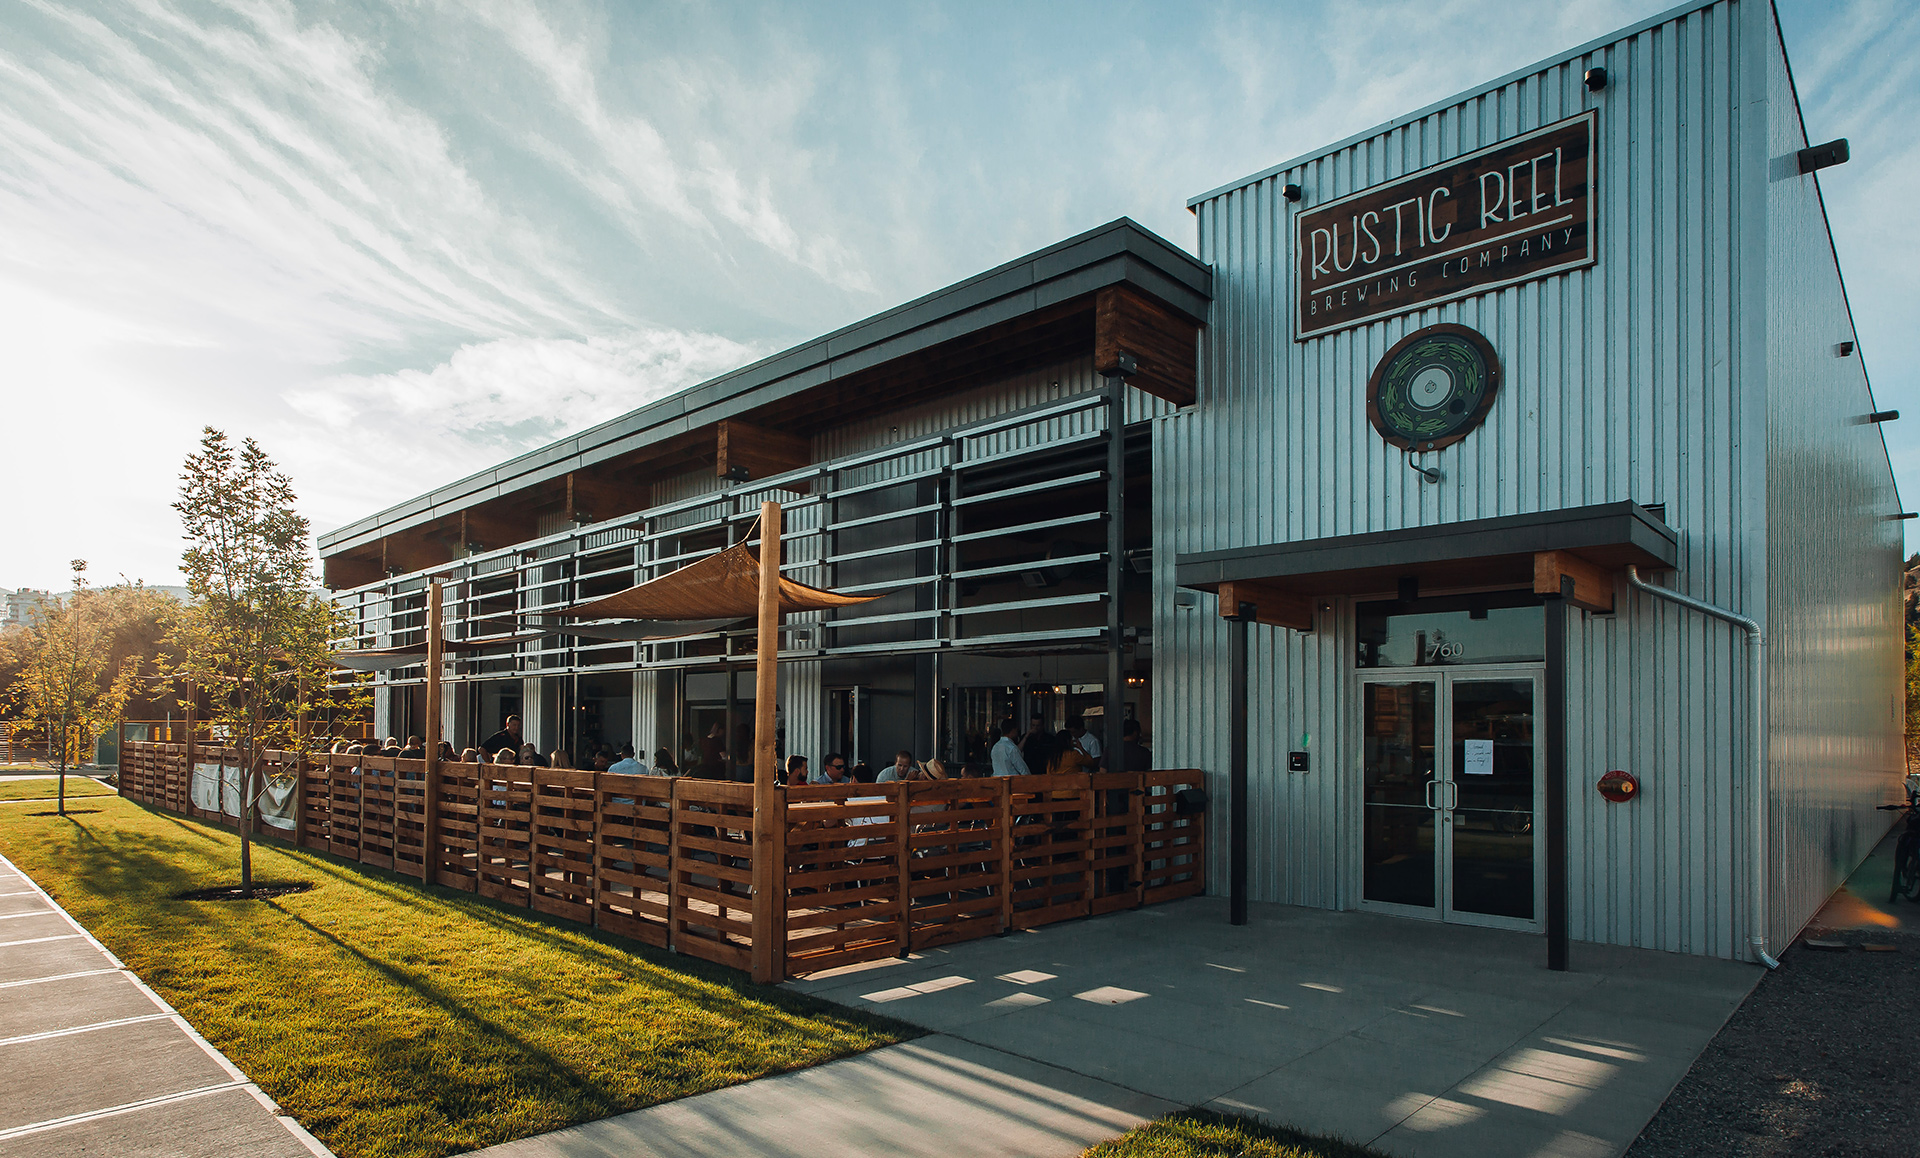 kelowna brewery marketing rustic reel exterior shot